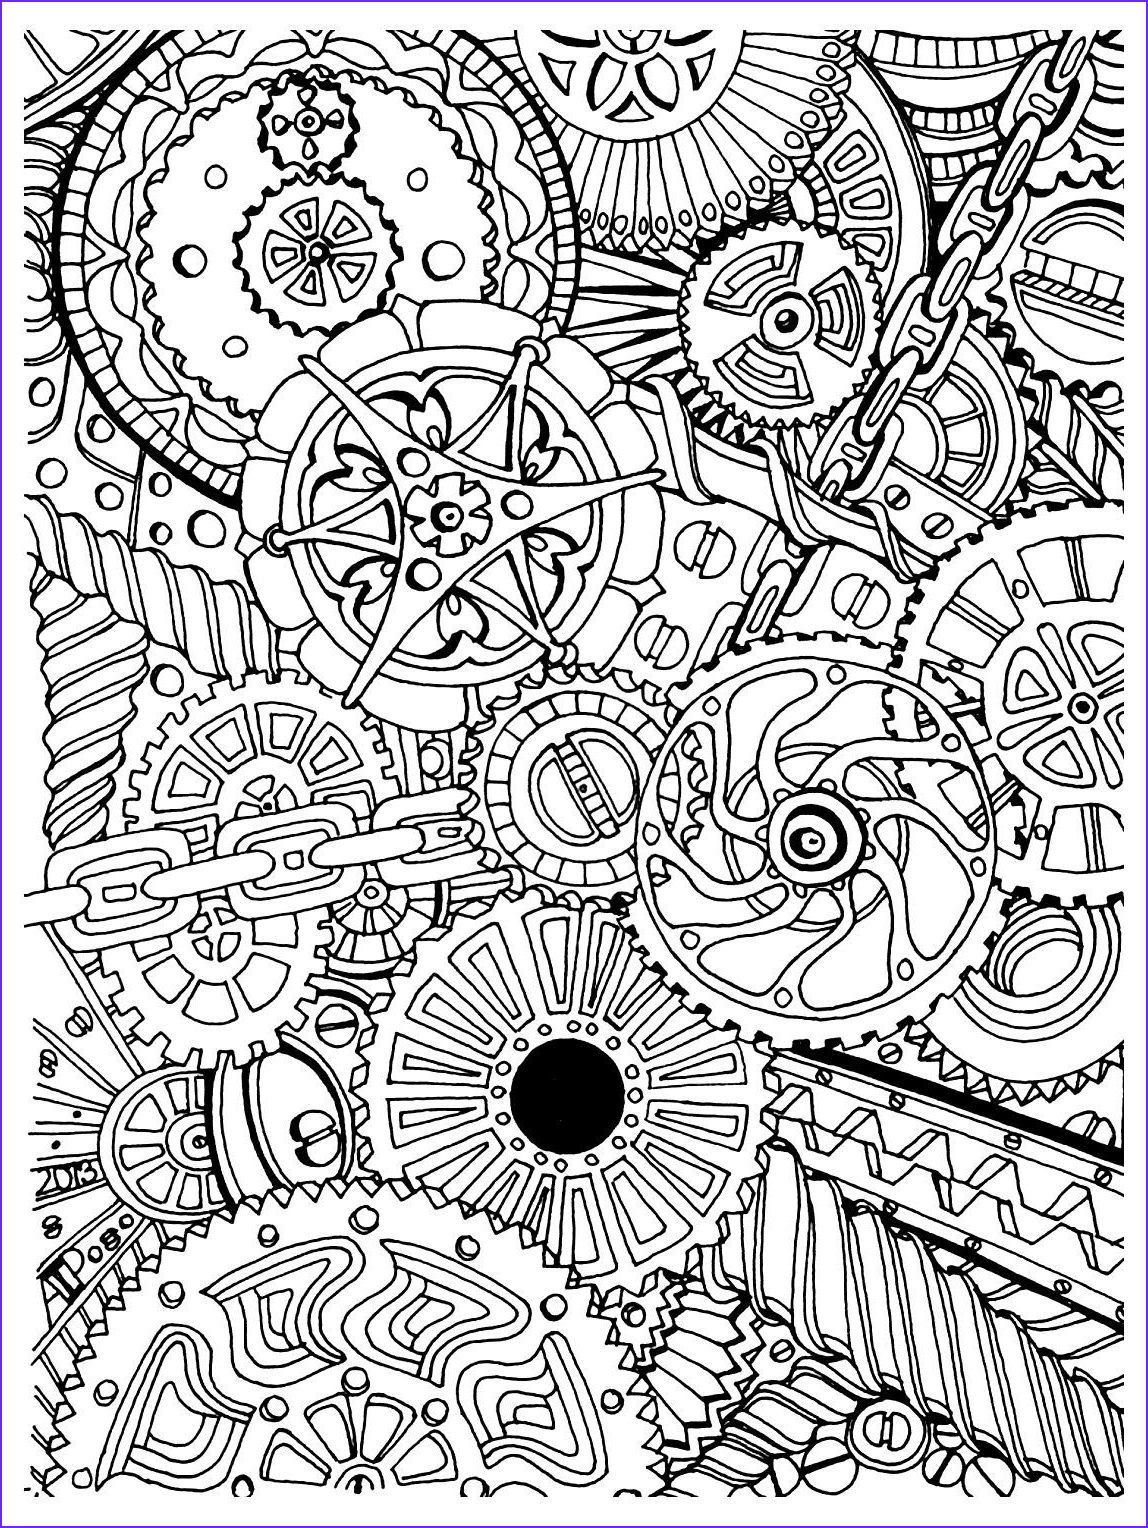 Zen Coloring Elegant Images to Print This Free Coloring Page Coloring Adult Zen Anti